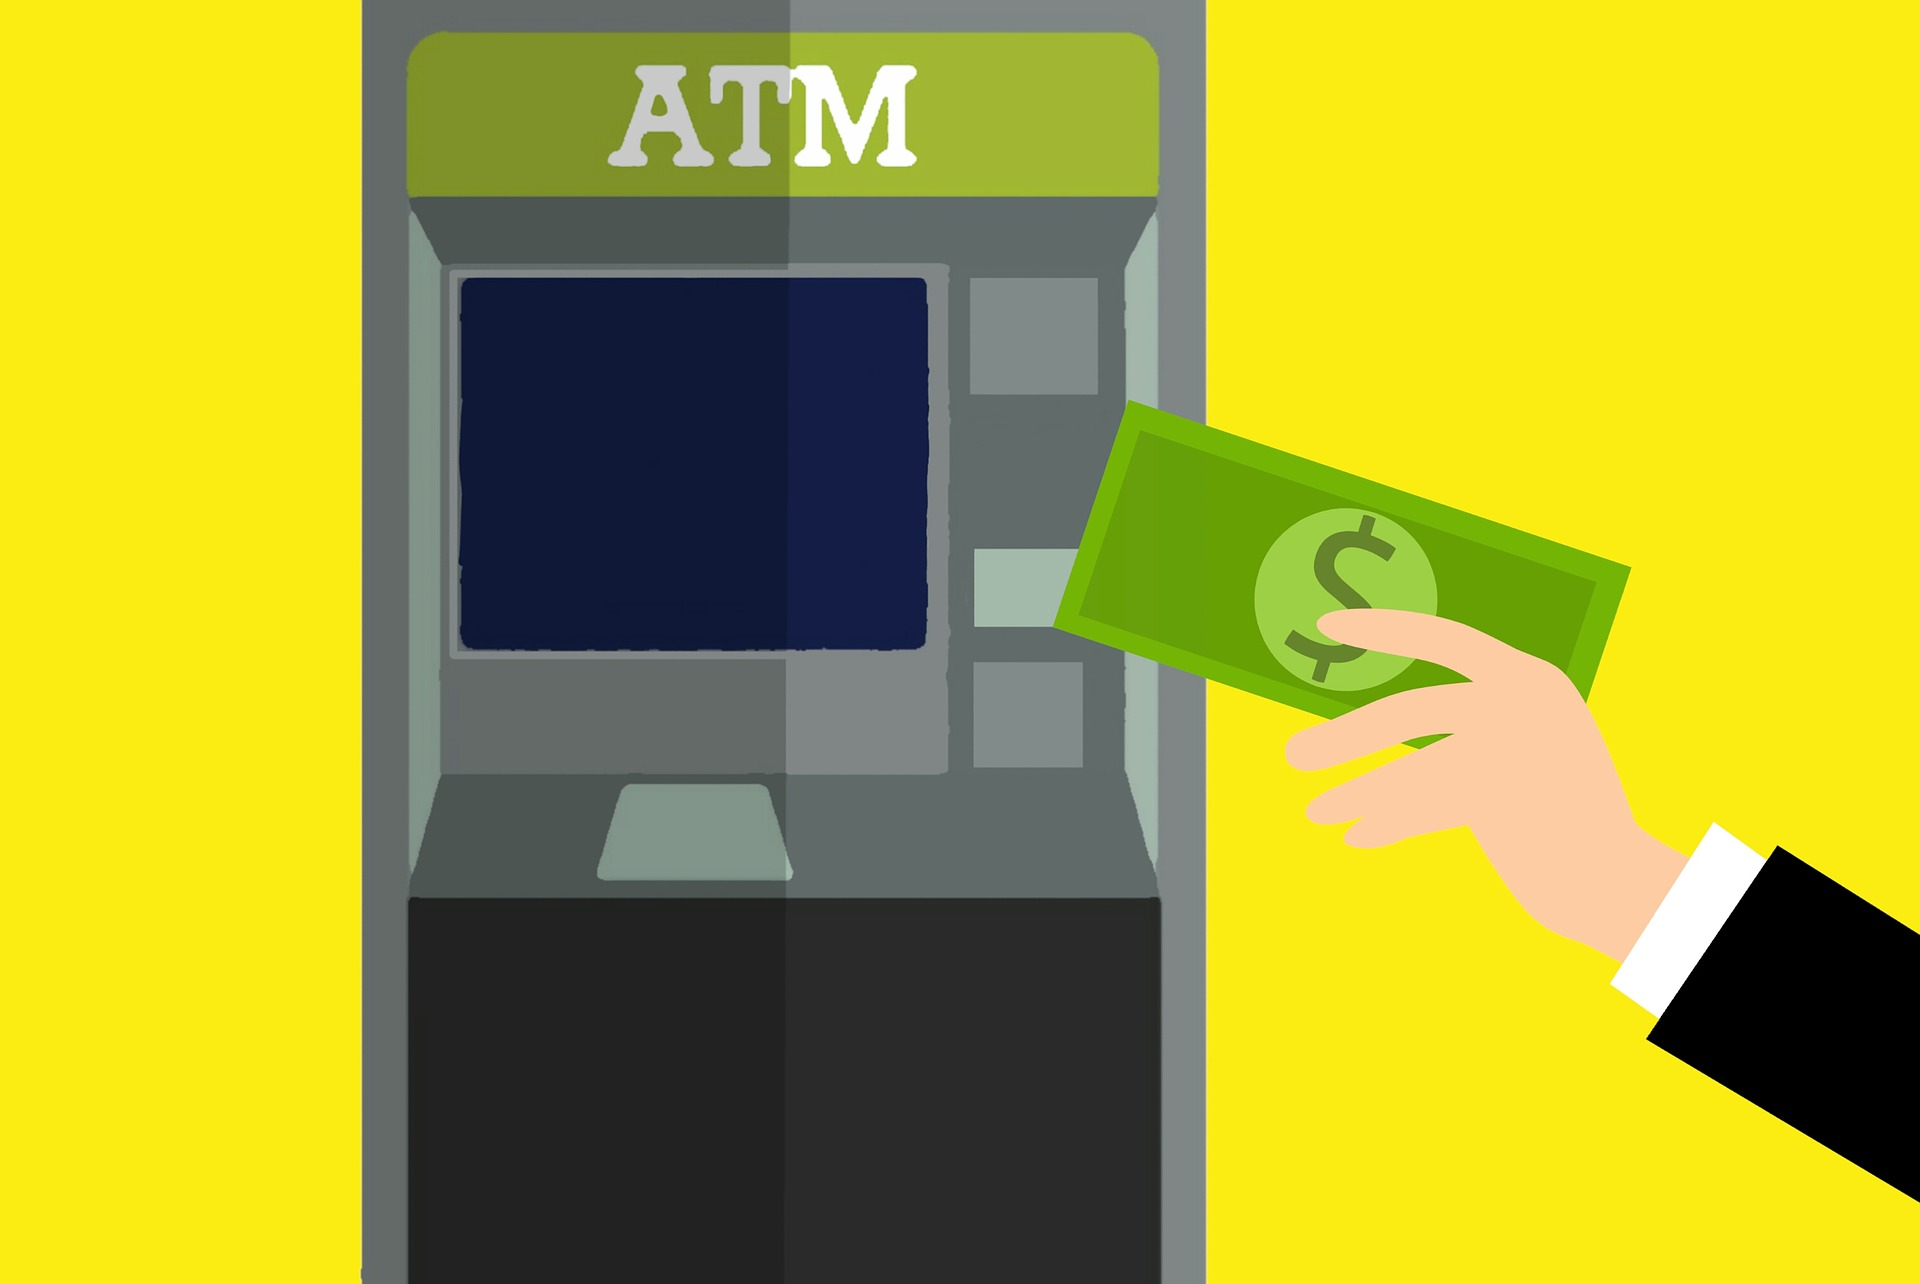 Cash Is Resilient, so Are ATM's